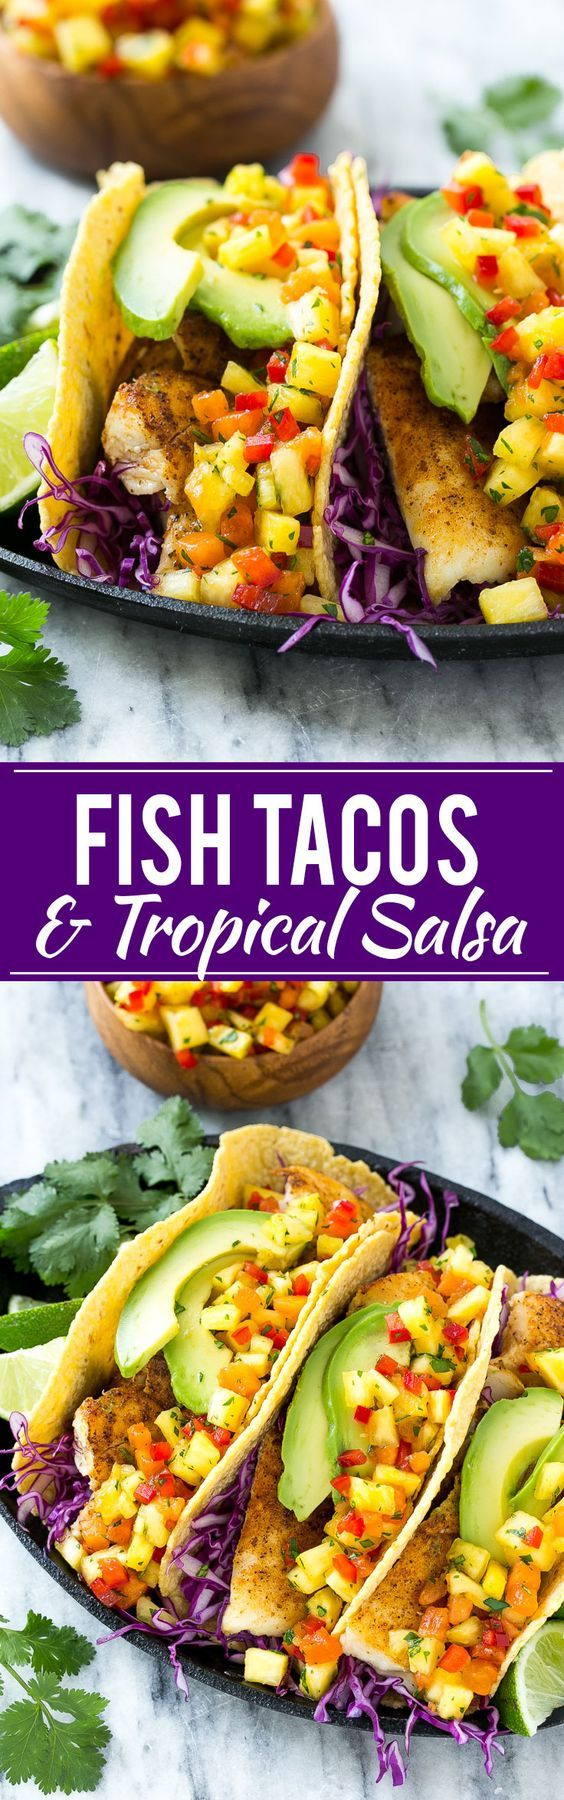 This recipe for tilapia fish tacos is seasoned fish layered with cabbage avocado and a tropical salsa all tucked inside warm corn tortillas. It's a meal that's fast fresh healthy and ready in 20 minutes!